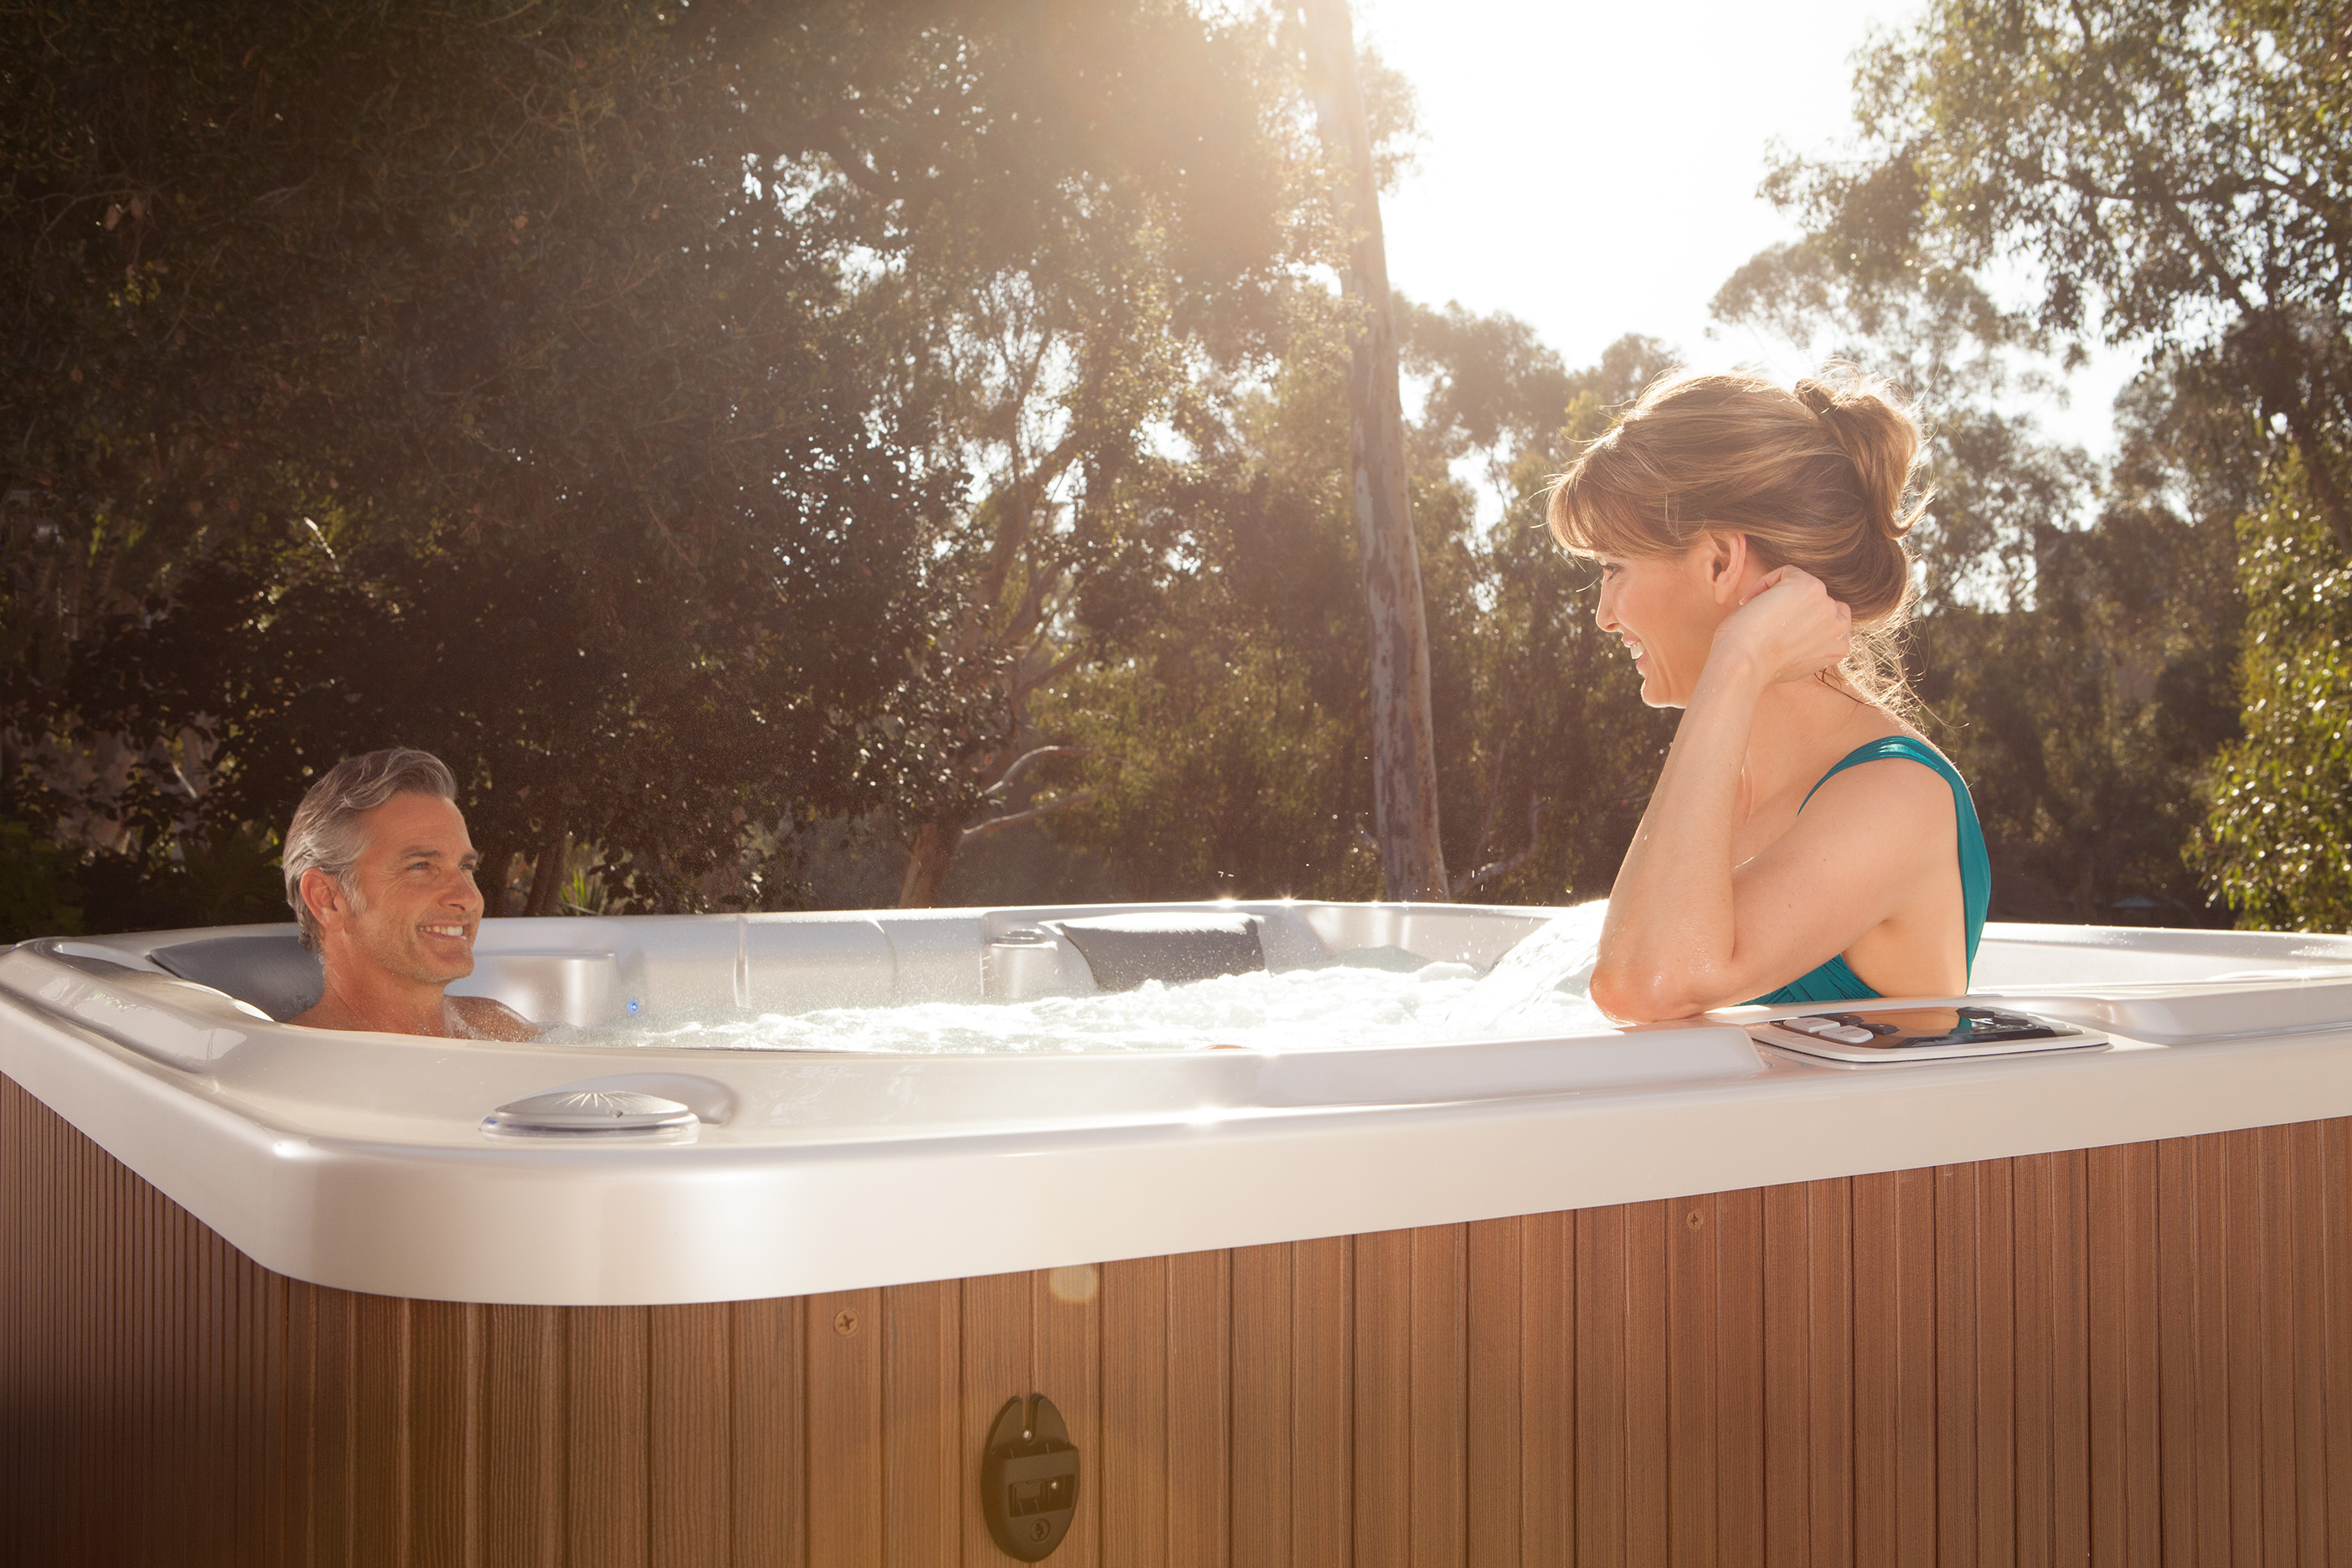 Include a Hot Tub in your Home Remodeling Project